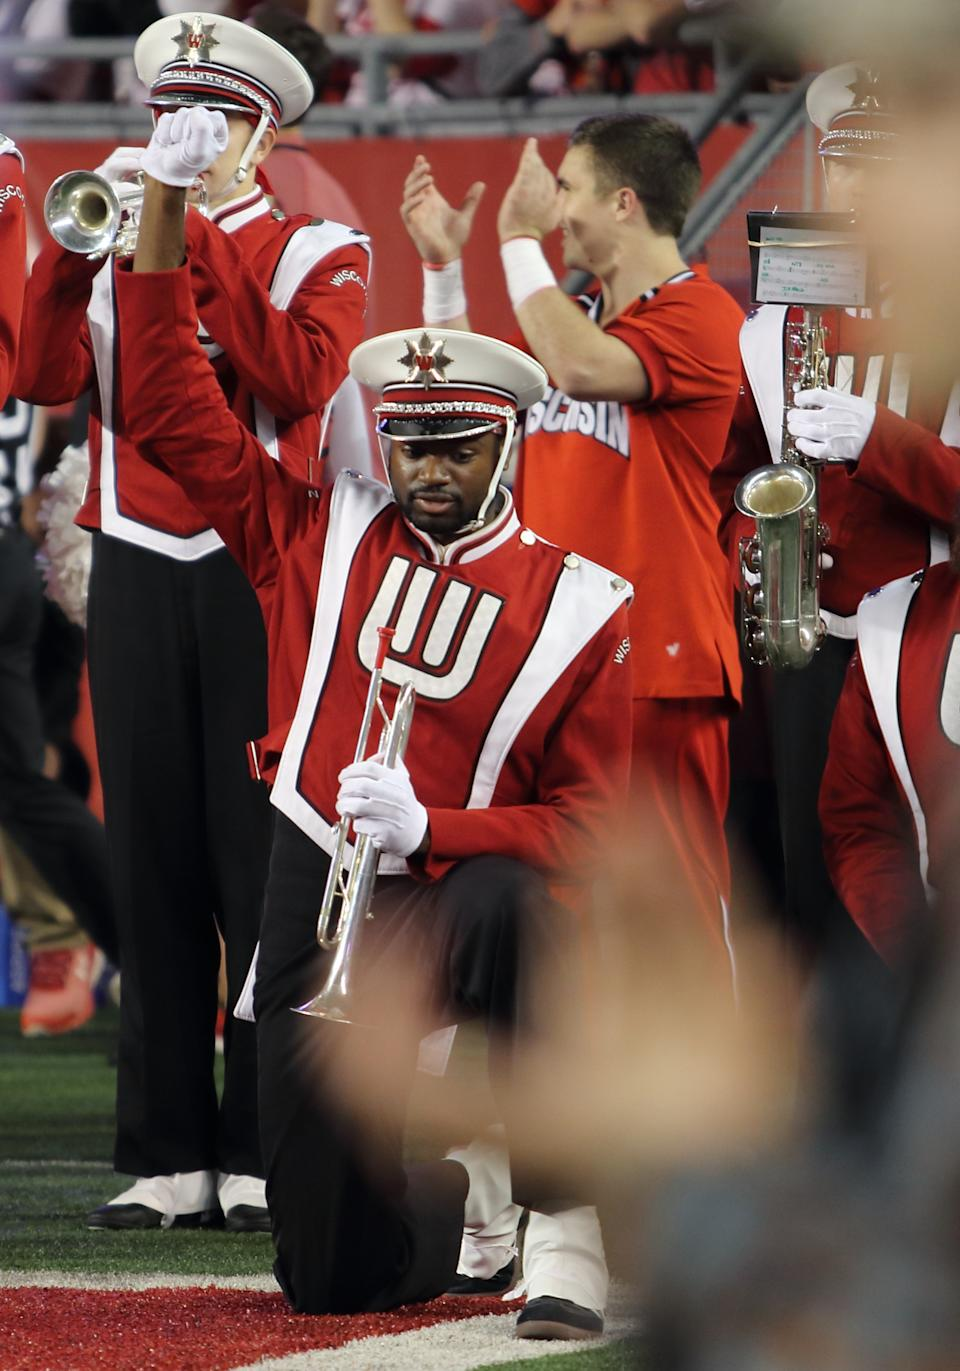 A Wisconsin Badger band member kneels during the playing of the National Anthem. Ohio State beat Wisconsin by a final score of 30-23 in overtime at Camp Randall Stadium in Madison, WI. on Oct. 15, 2016. (Photo by Patrick S Blood/Icon Sportswire via Getty Images)